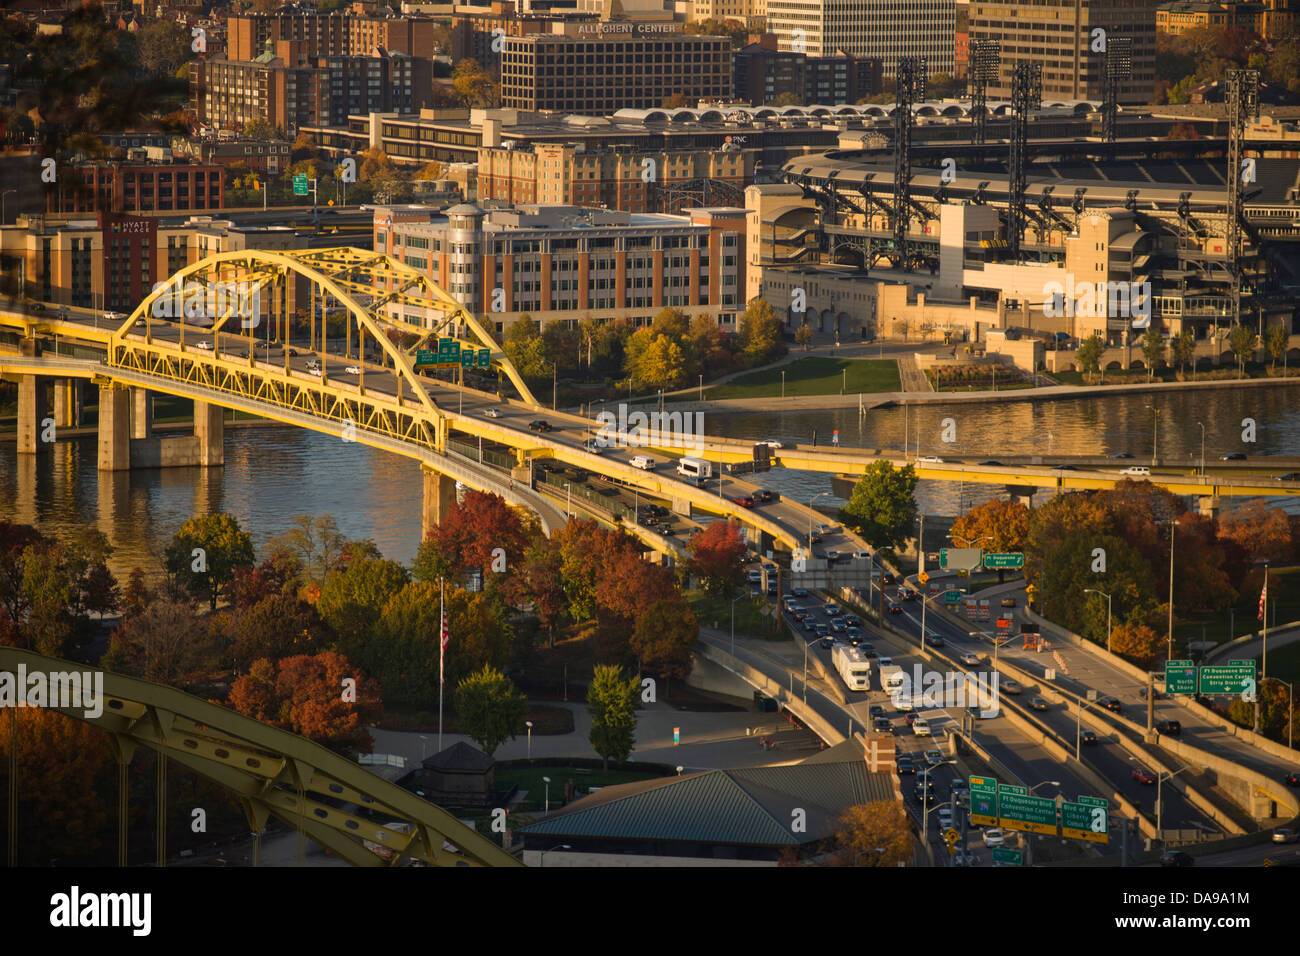 FORT DUQUESNE BRIDGE ALLEGHENY RIVER DOWNTOWN PITTSBURGH PENNSLVANIA USA - Stock Image